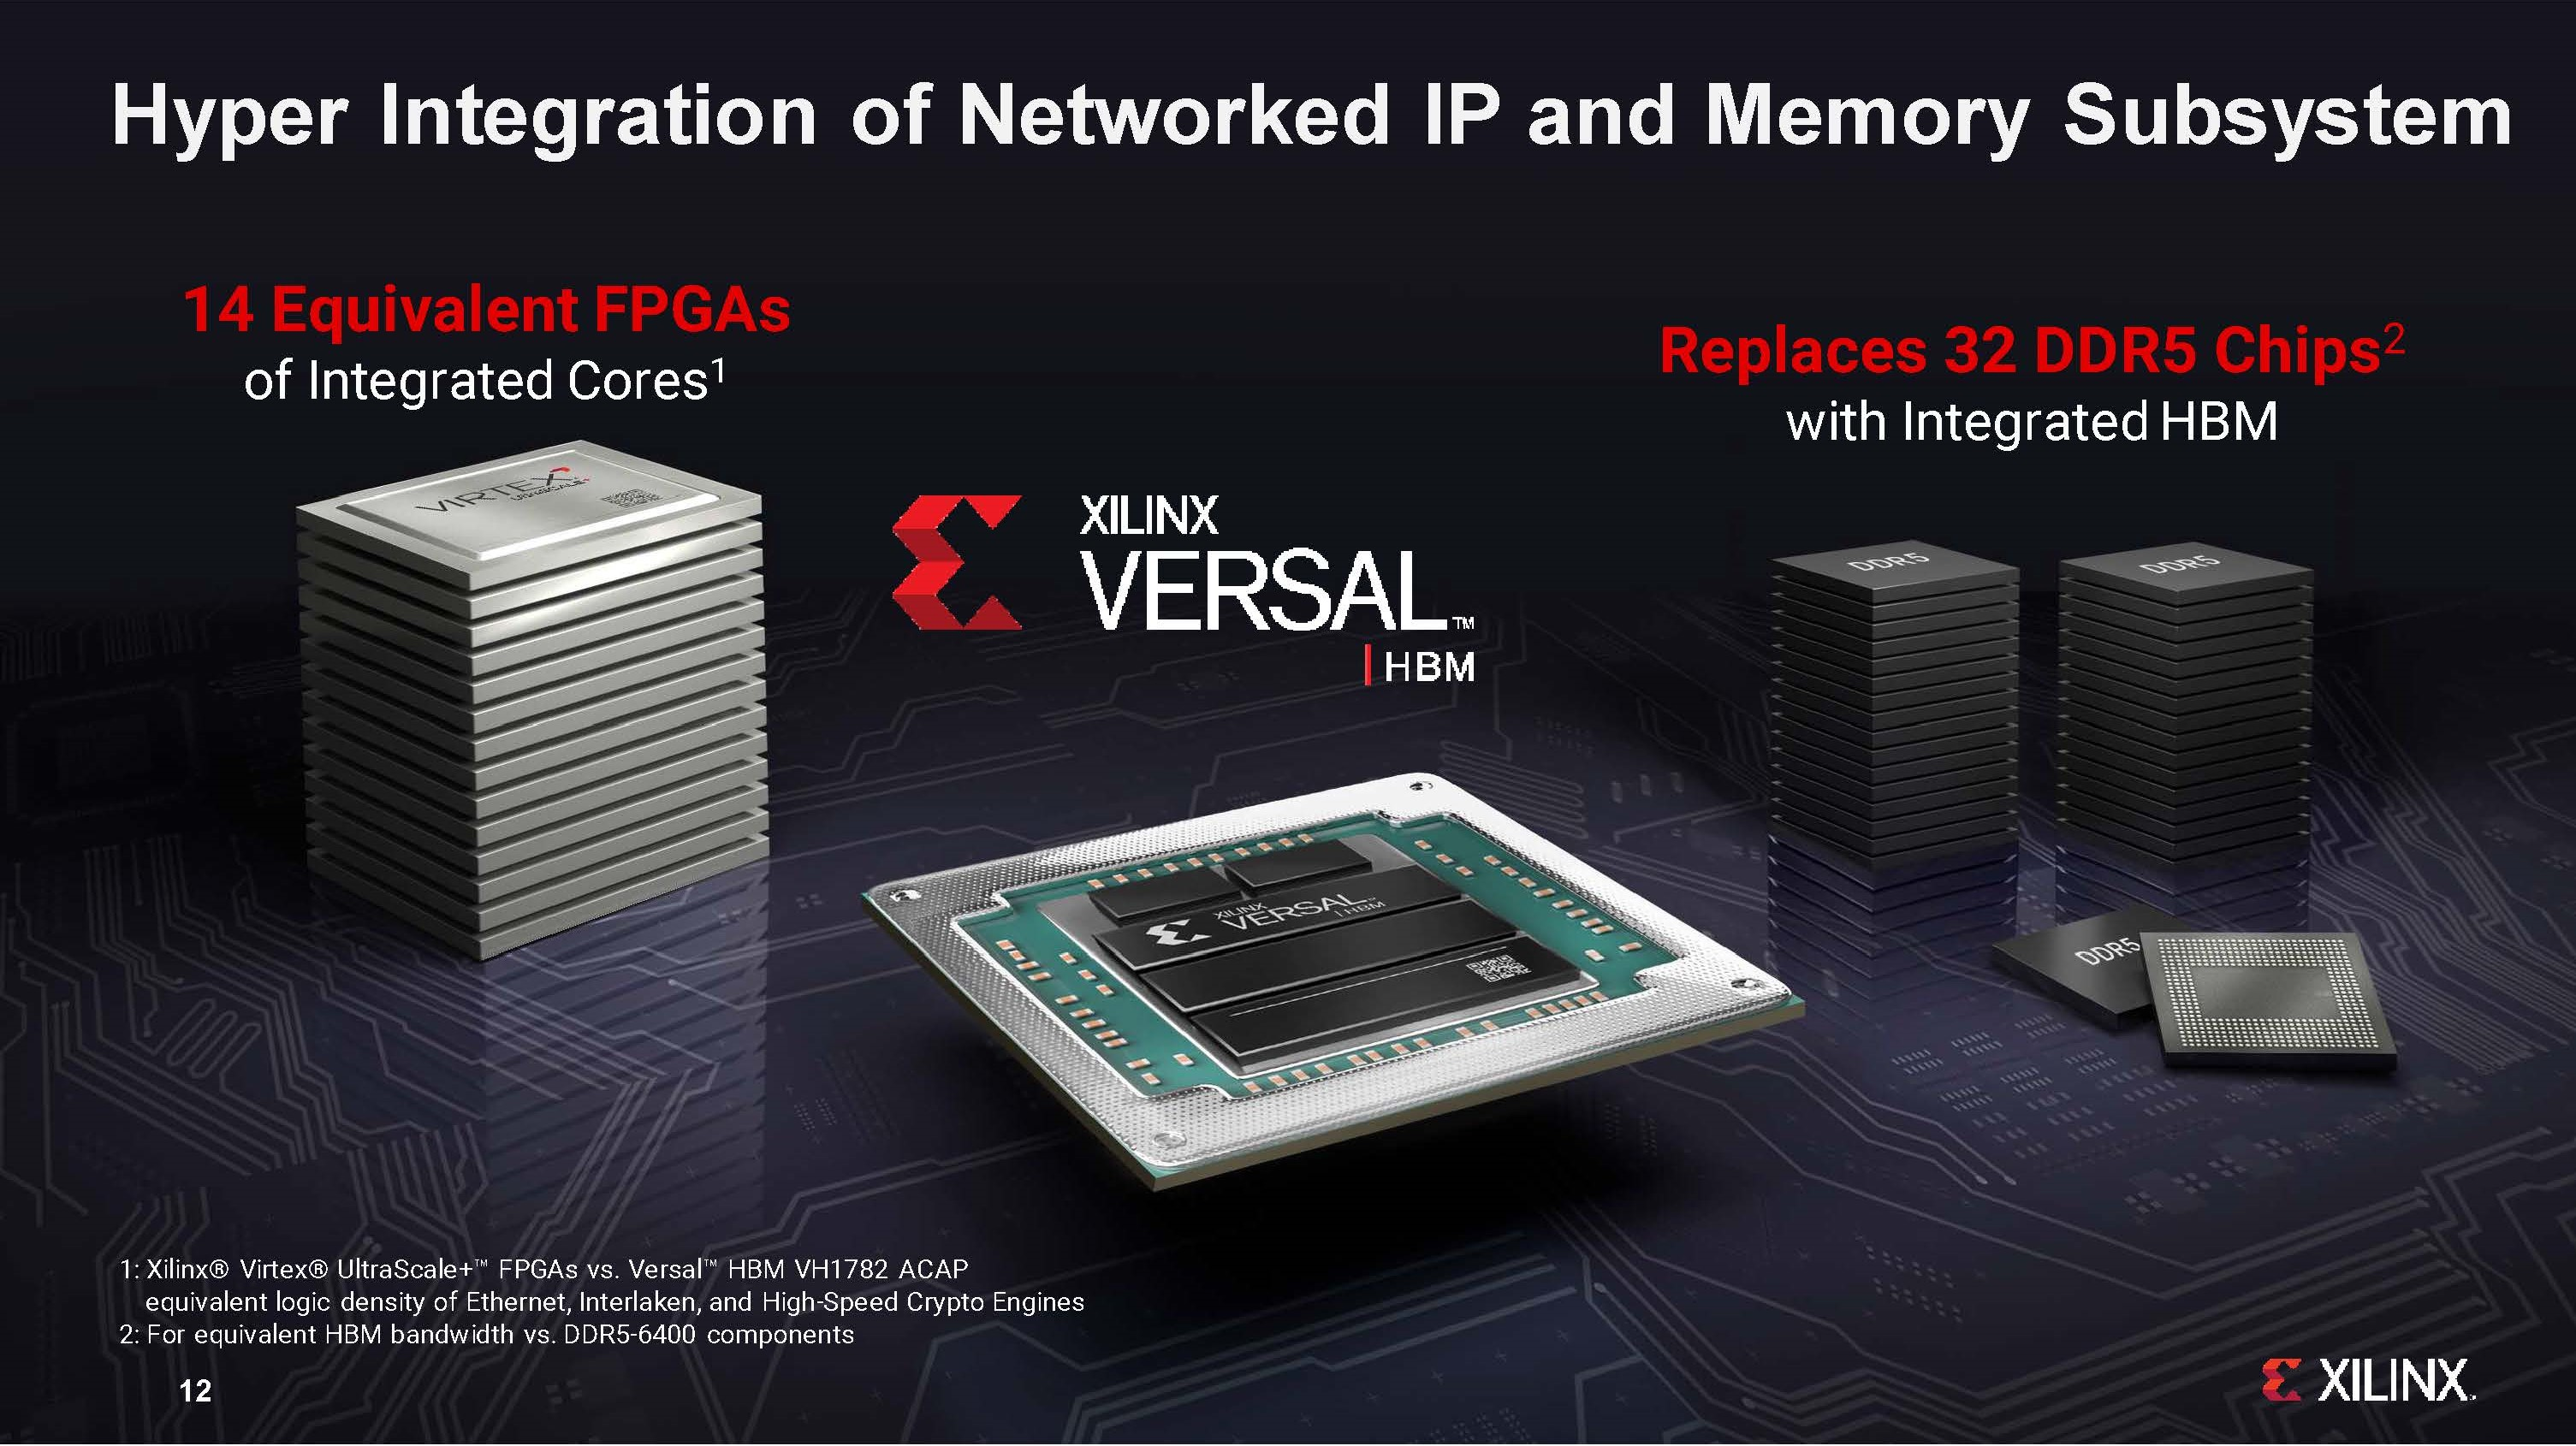 Xilinx Versal HBM replaces multiple devices